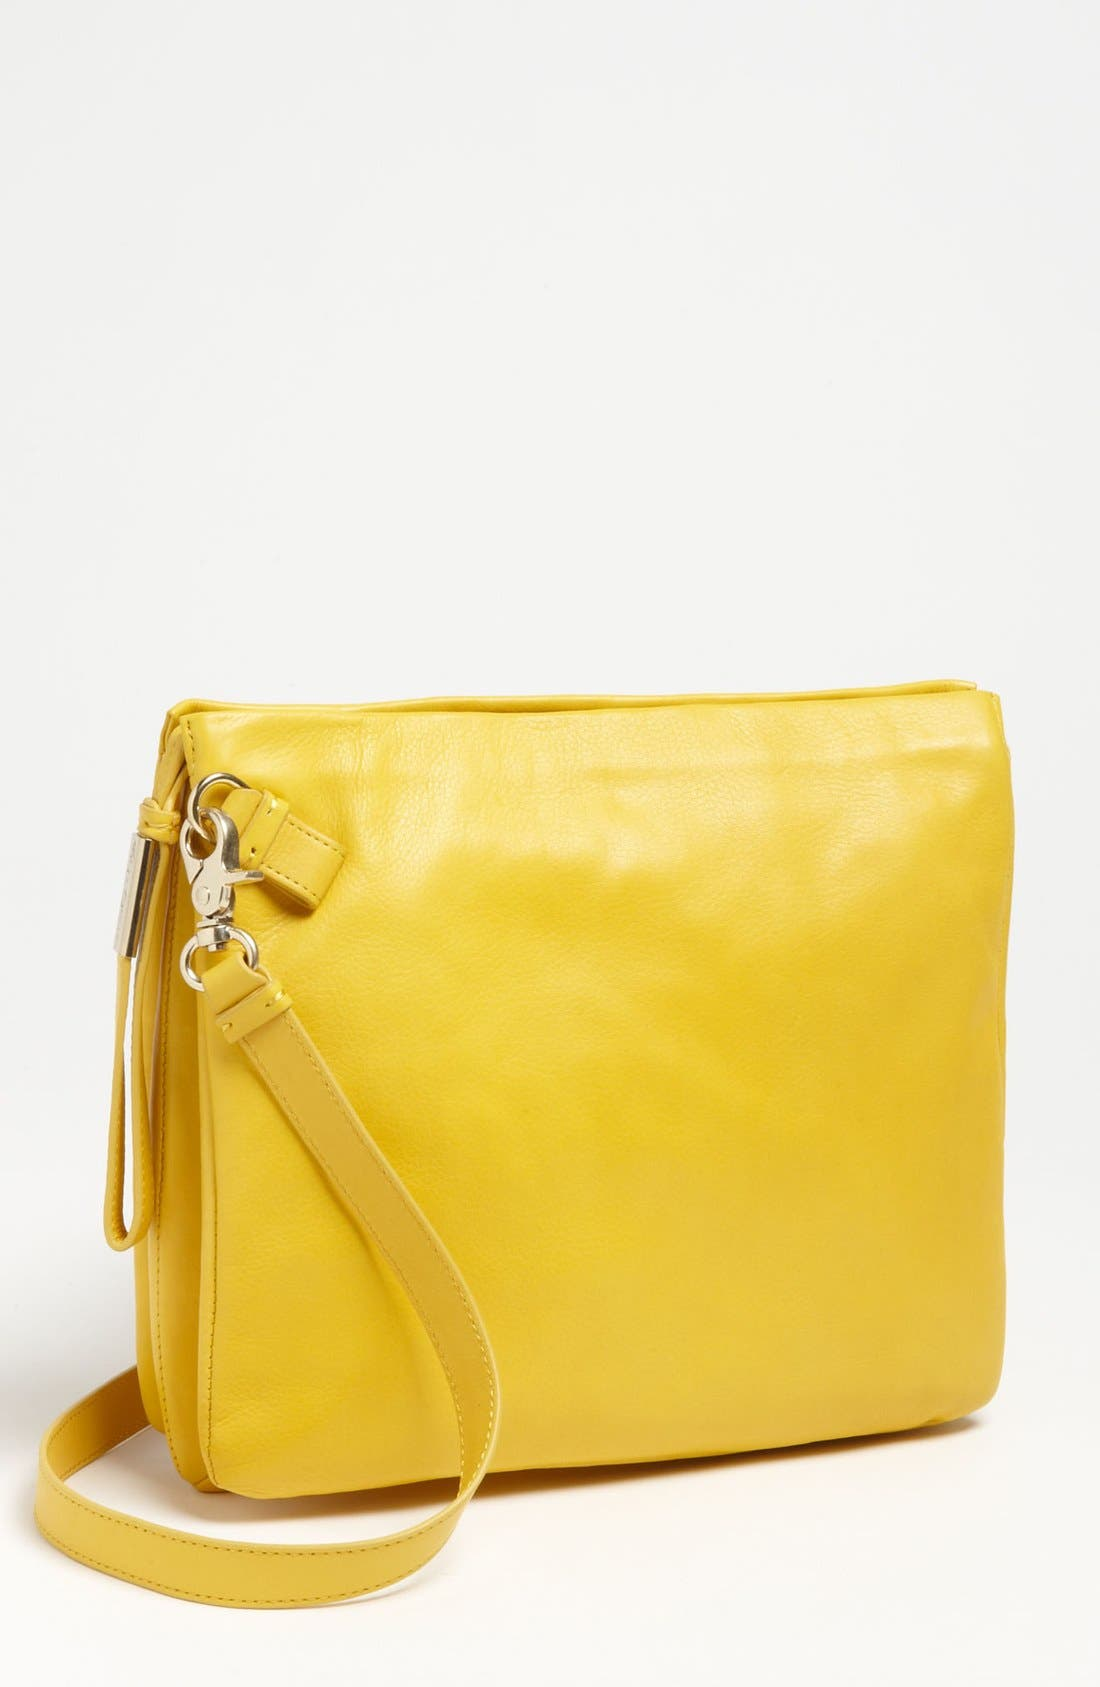 Main Image - Foley + Corinna 'iPad Cache' Leather Crossbody Bag